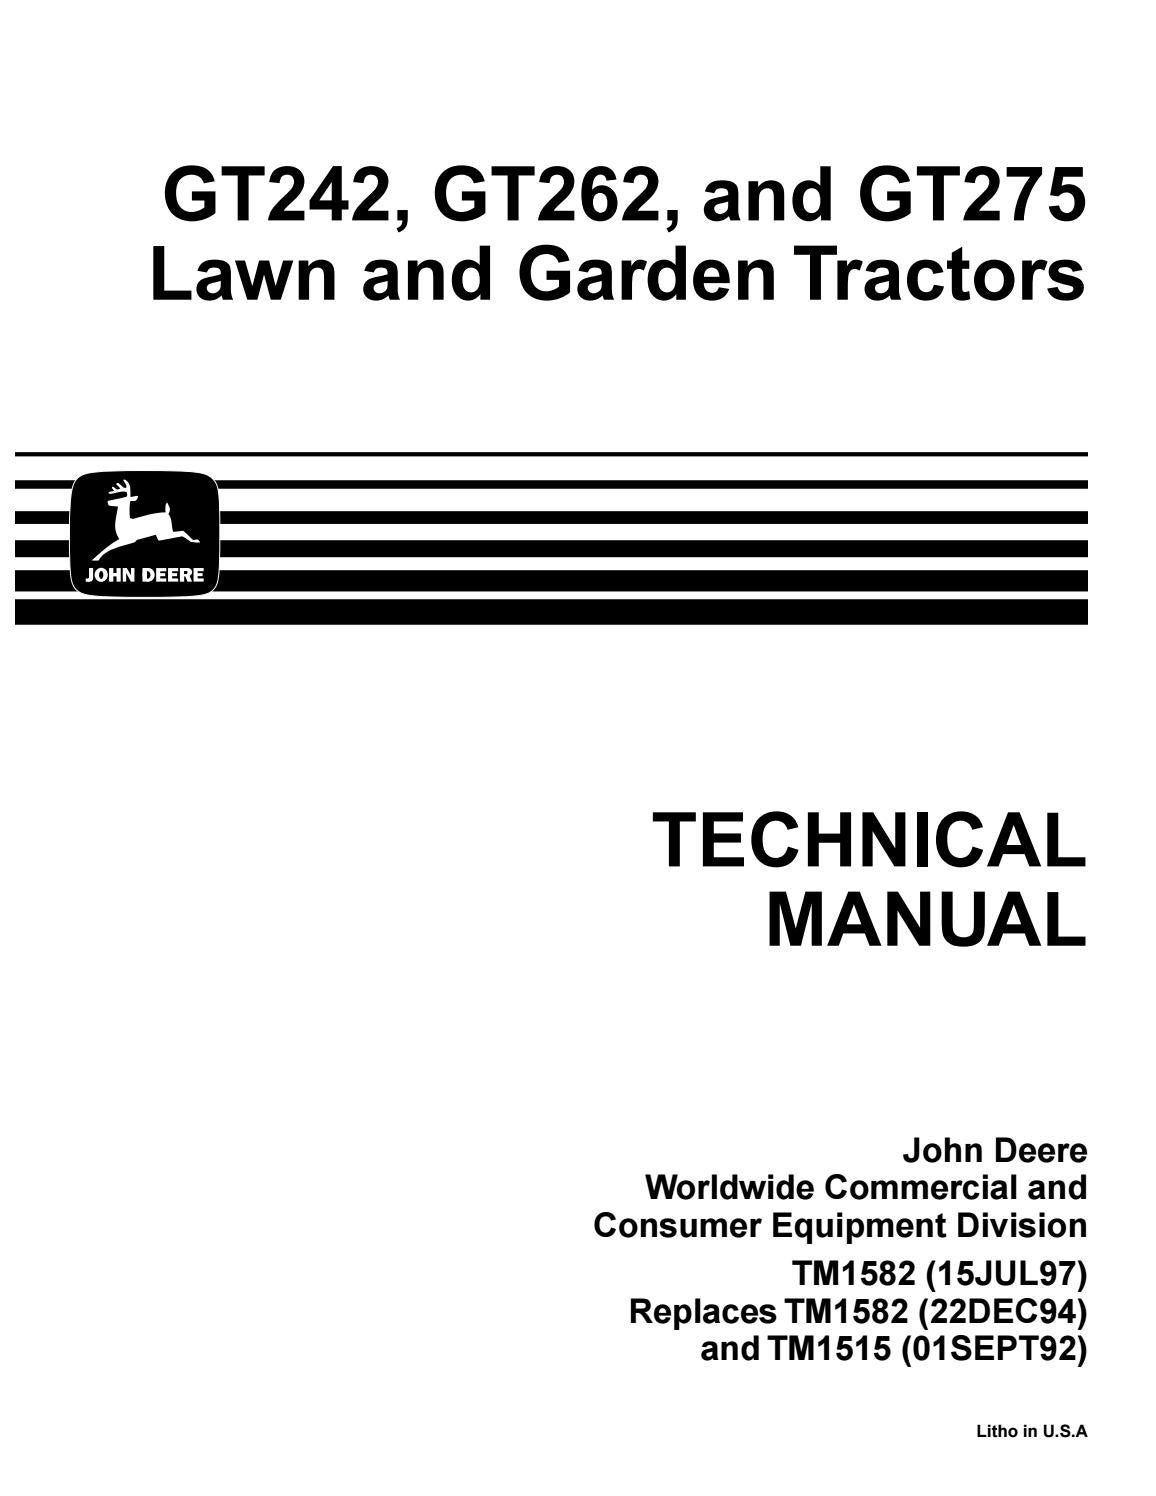 John deere gt275 lawn garden tractor service repair manual ... on